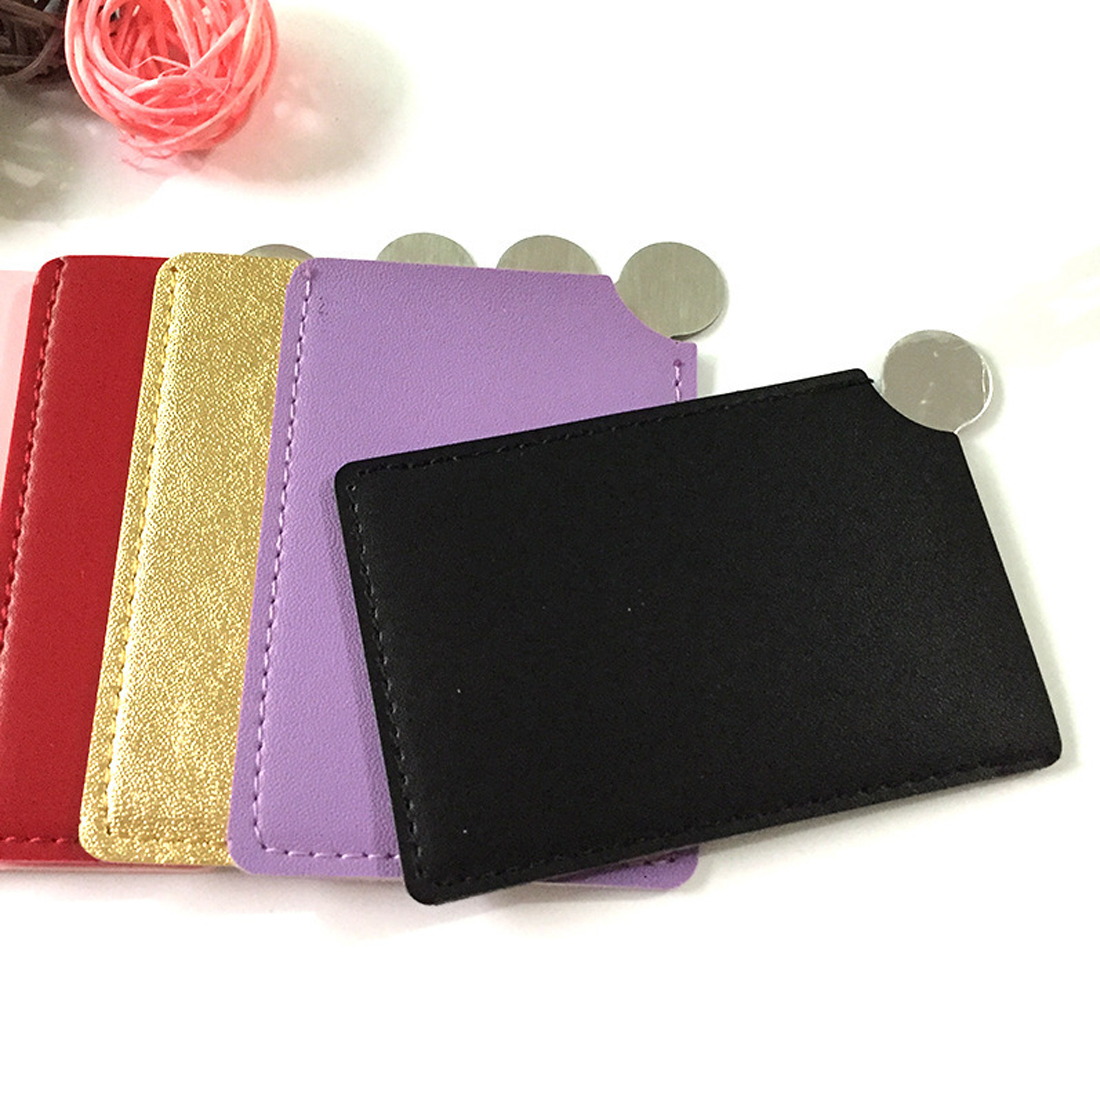 Original High Quality Portable Shatter Proof Card Style Pocket Cosmetic Mirror Pu Leather Cover Stainless Steel Unbreakable Makeup Mirror Beauty & Health